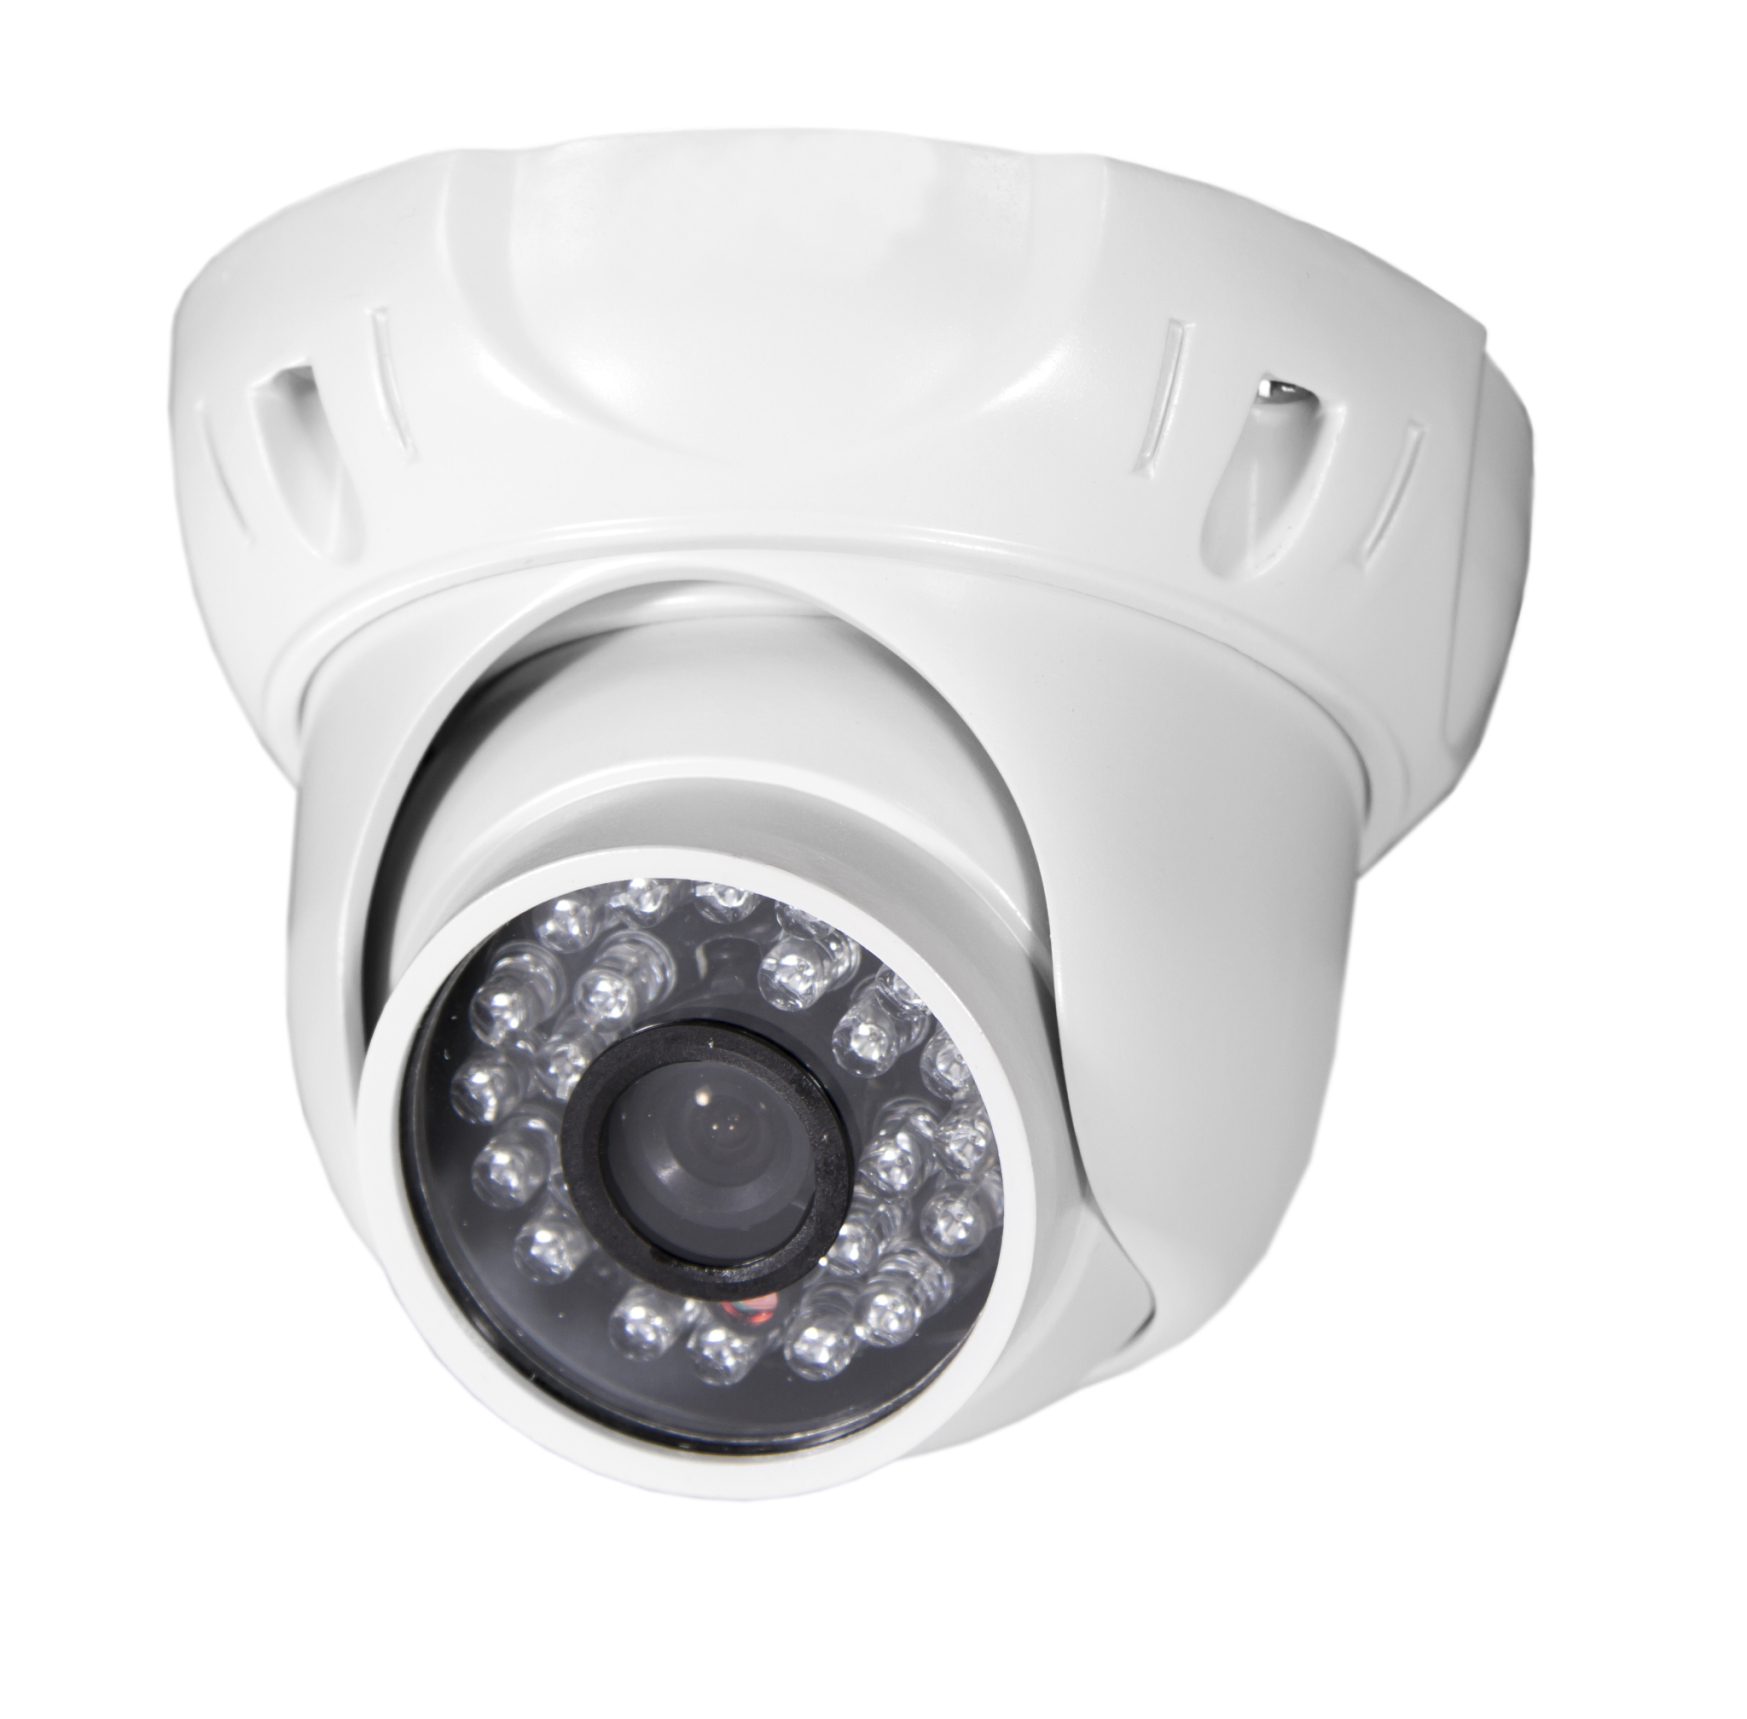 The Dos and Don'ts of Installing Home Surveillance Cameras